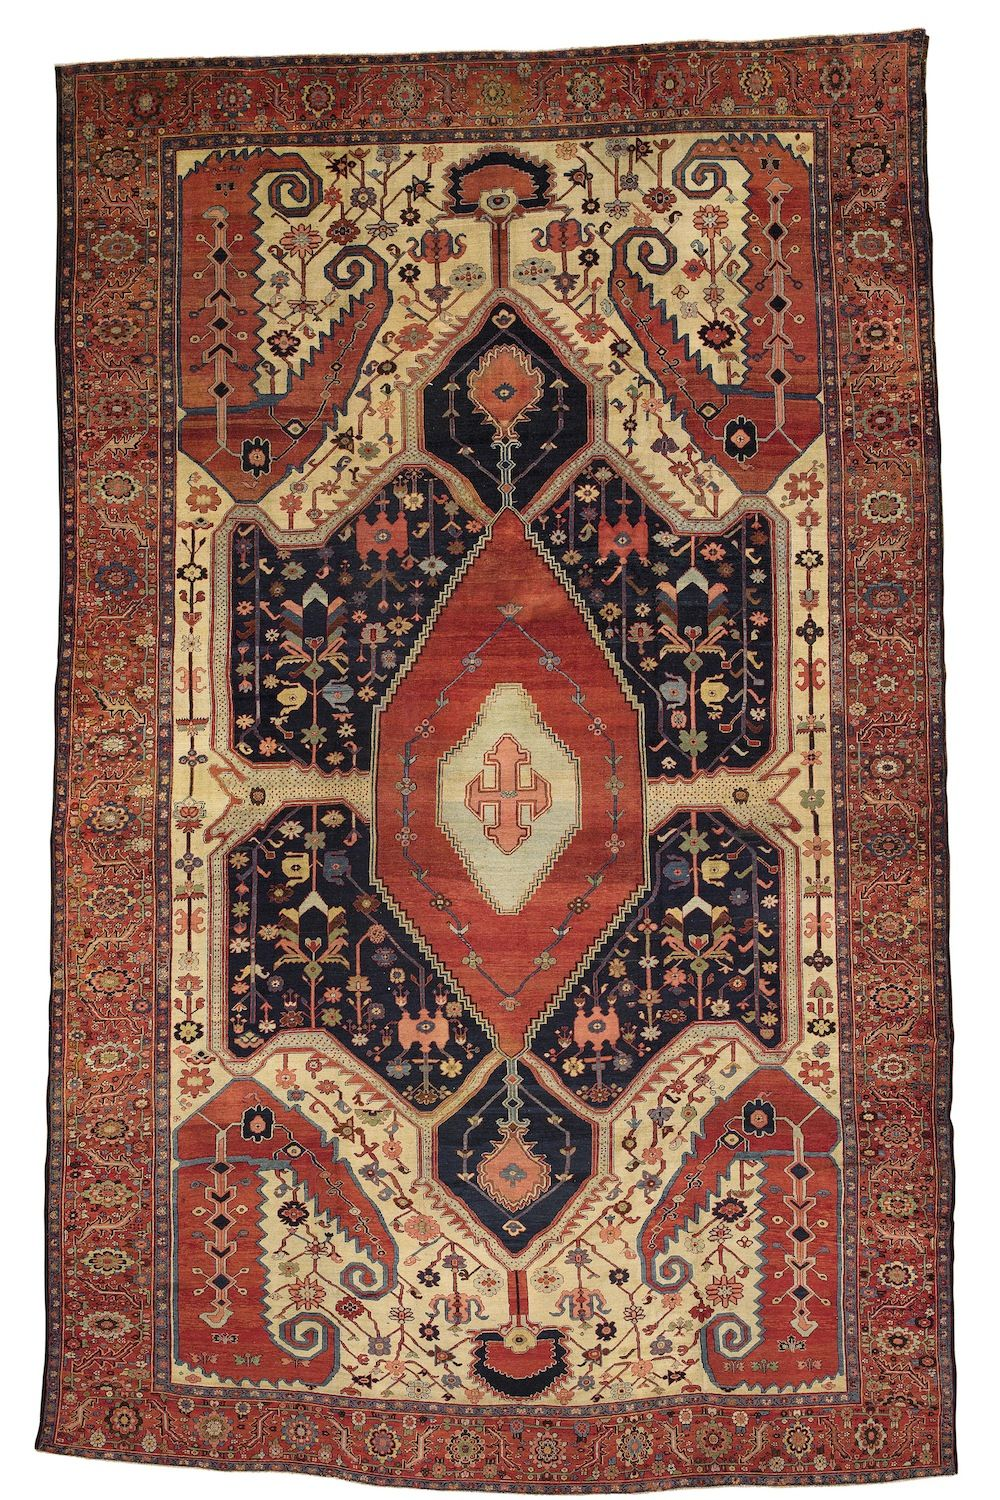 Persian Bakhshaish rug, 19th C (3rd Q)